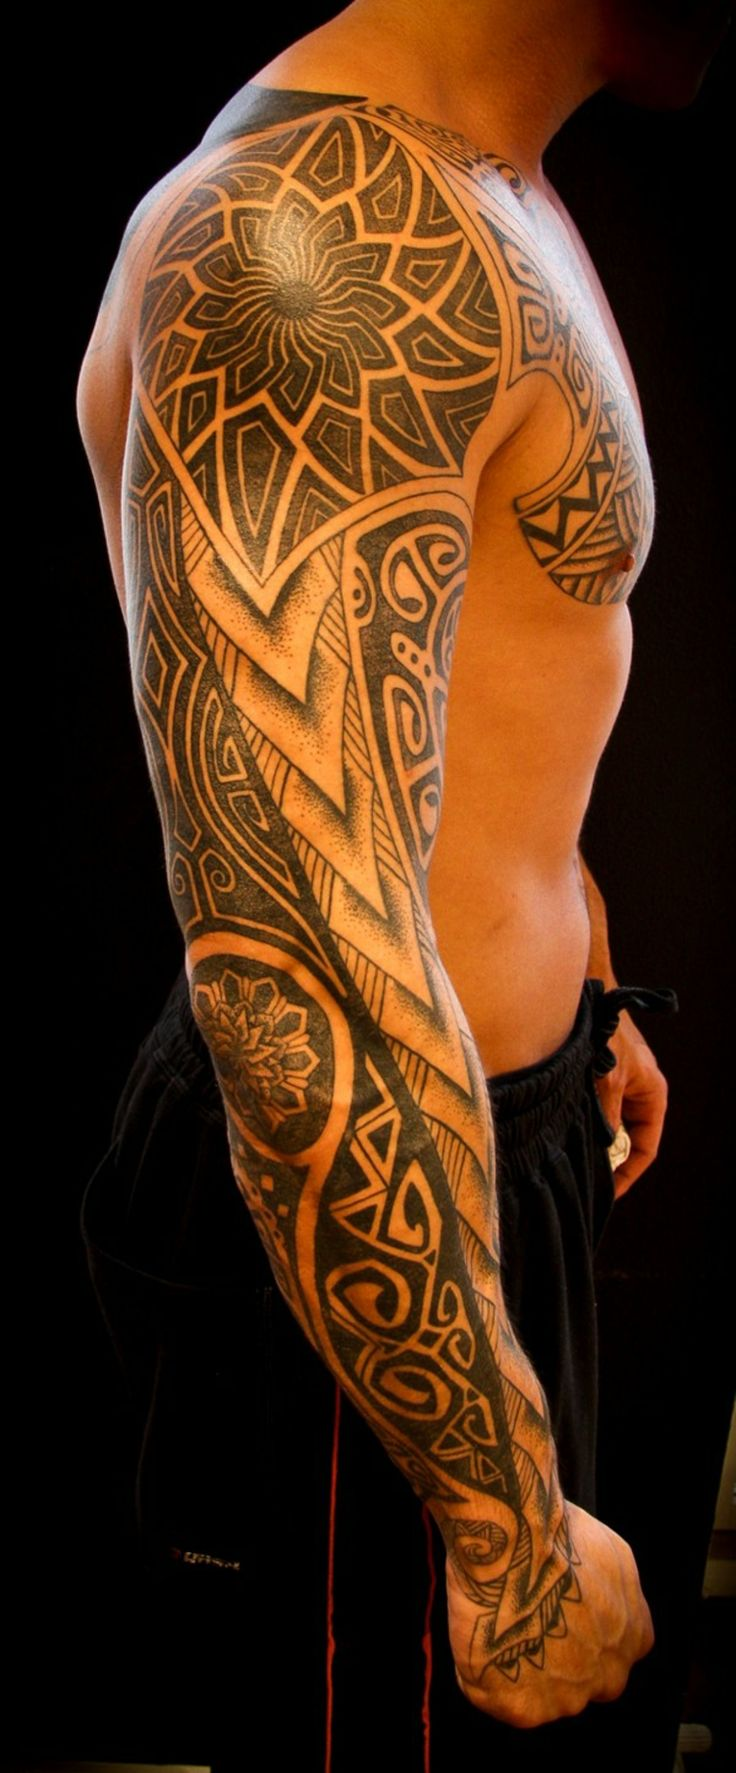 Best men arm tattoos ideas on pinterest guy